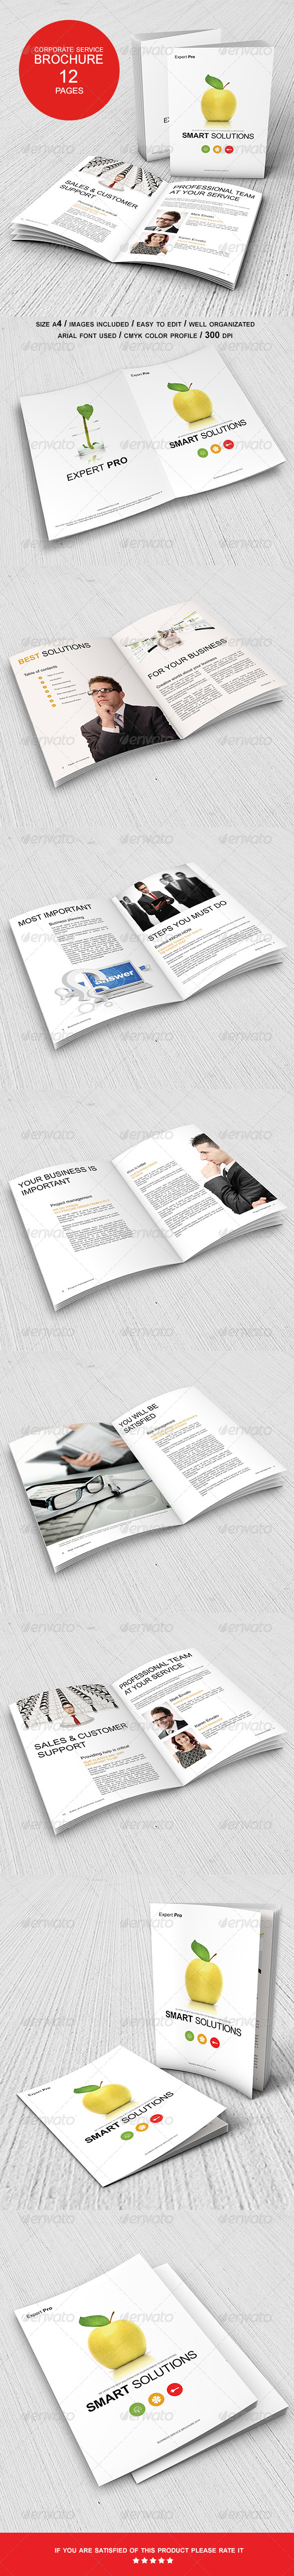 Corporate Management Solutions Brochure - Corporate Brochures